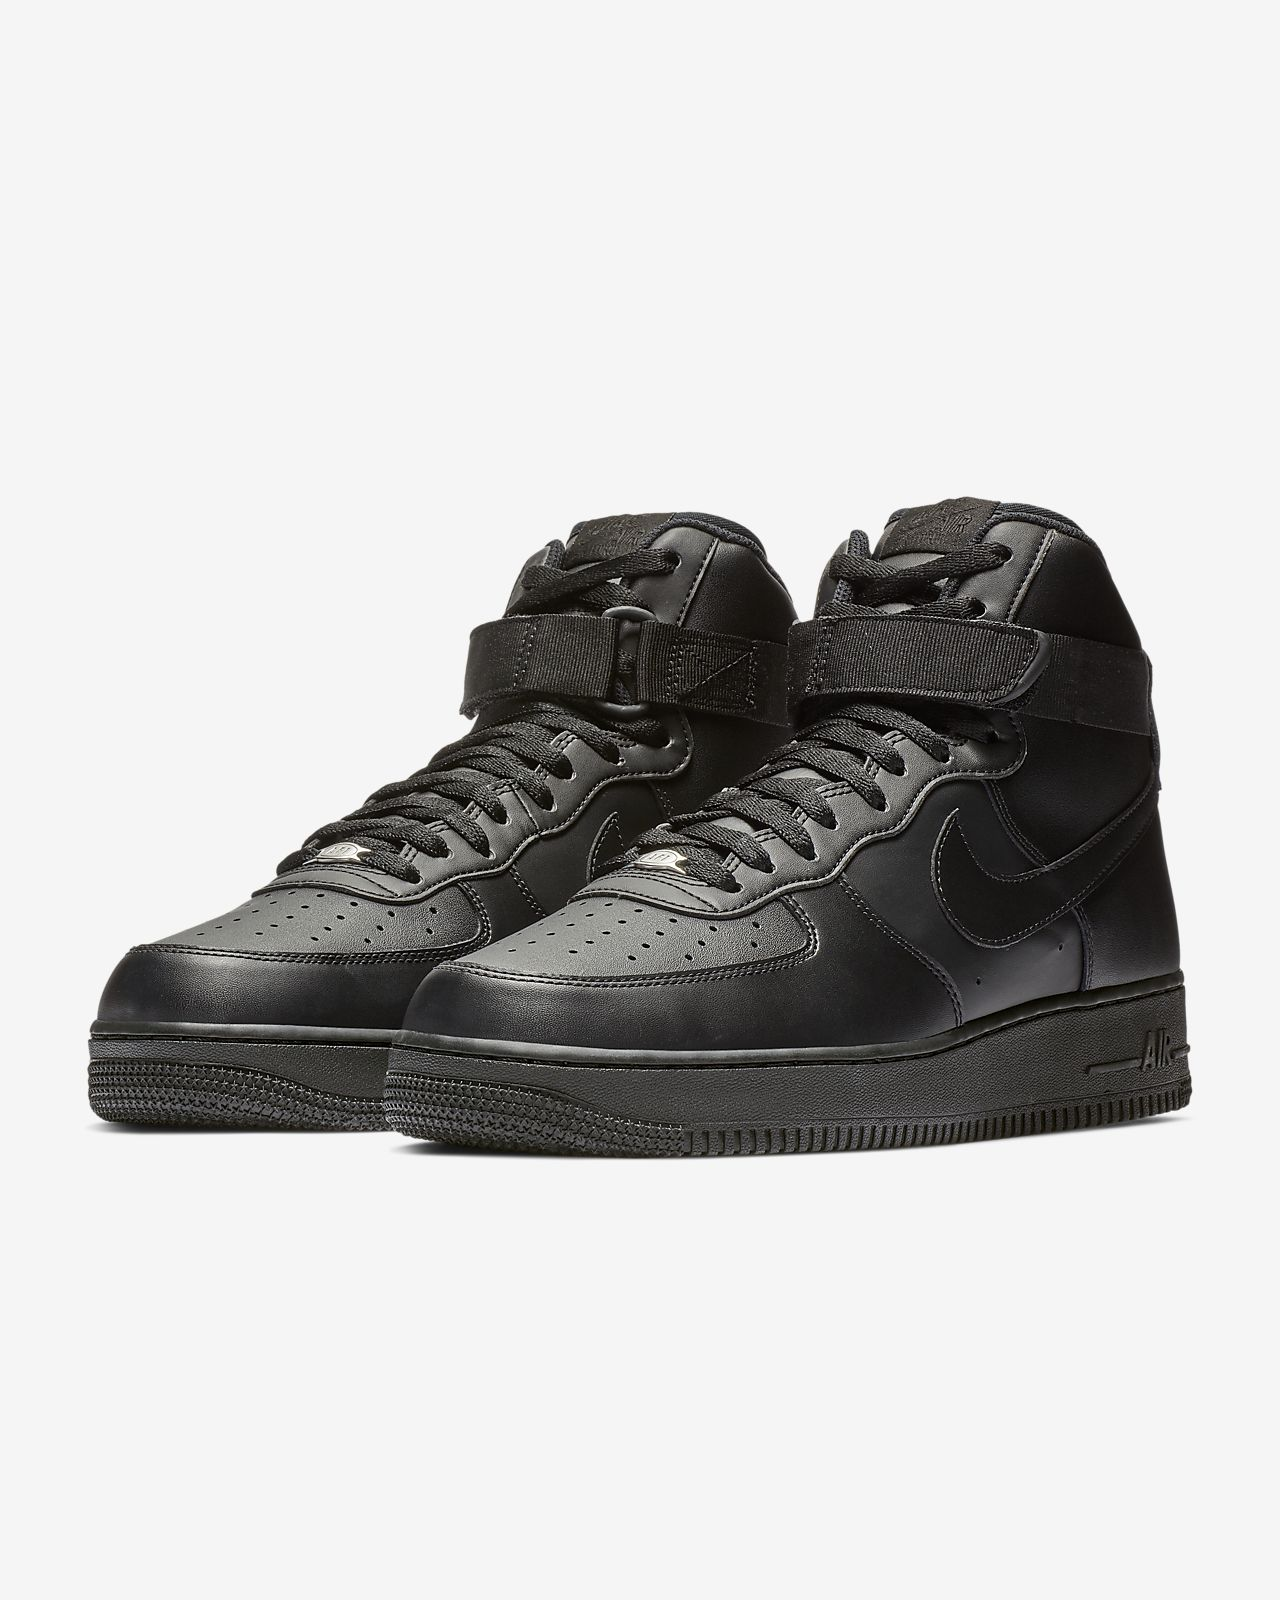 promo code 7051b c5793 ... Nike Air Force 1 High 07 Men s Shoe